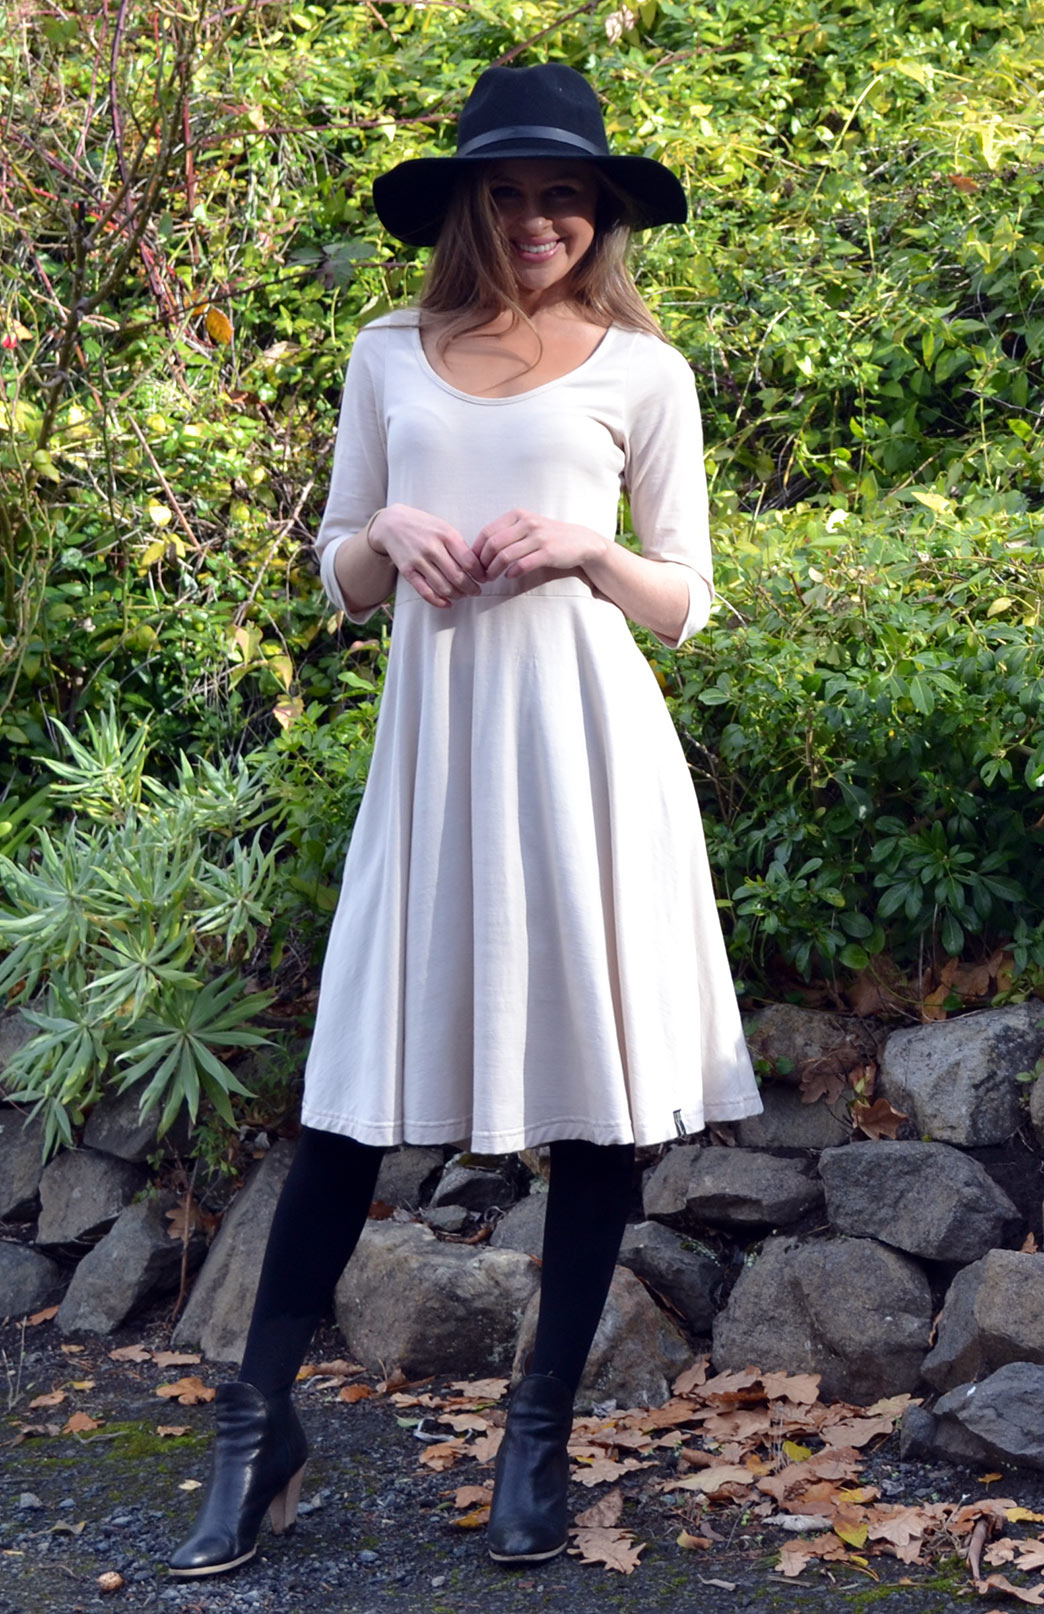 Jackie Dress - 3/4 Sleeves - Women's Cream 3/4 Sleeved Wool Dress with Scoop Neckline - Smitten Merino Tasmania Australia